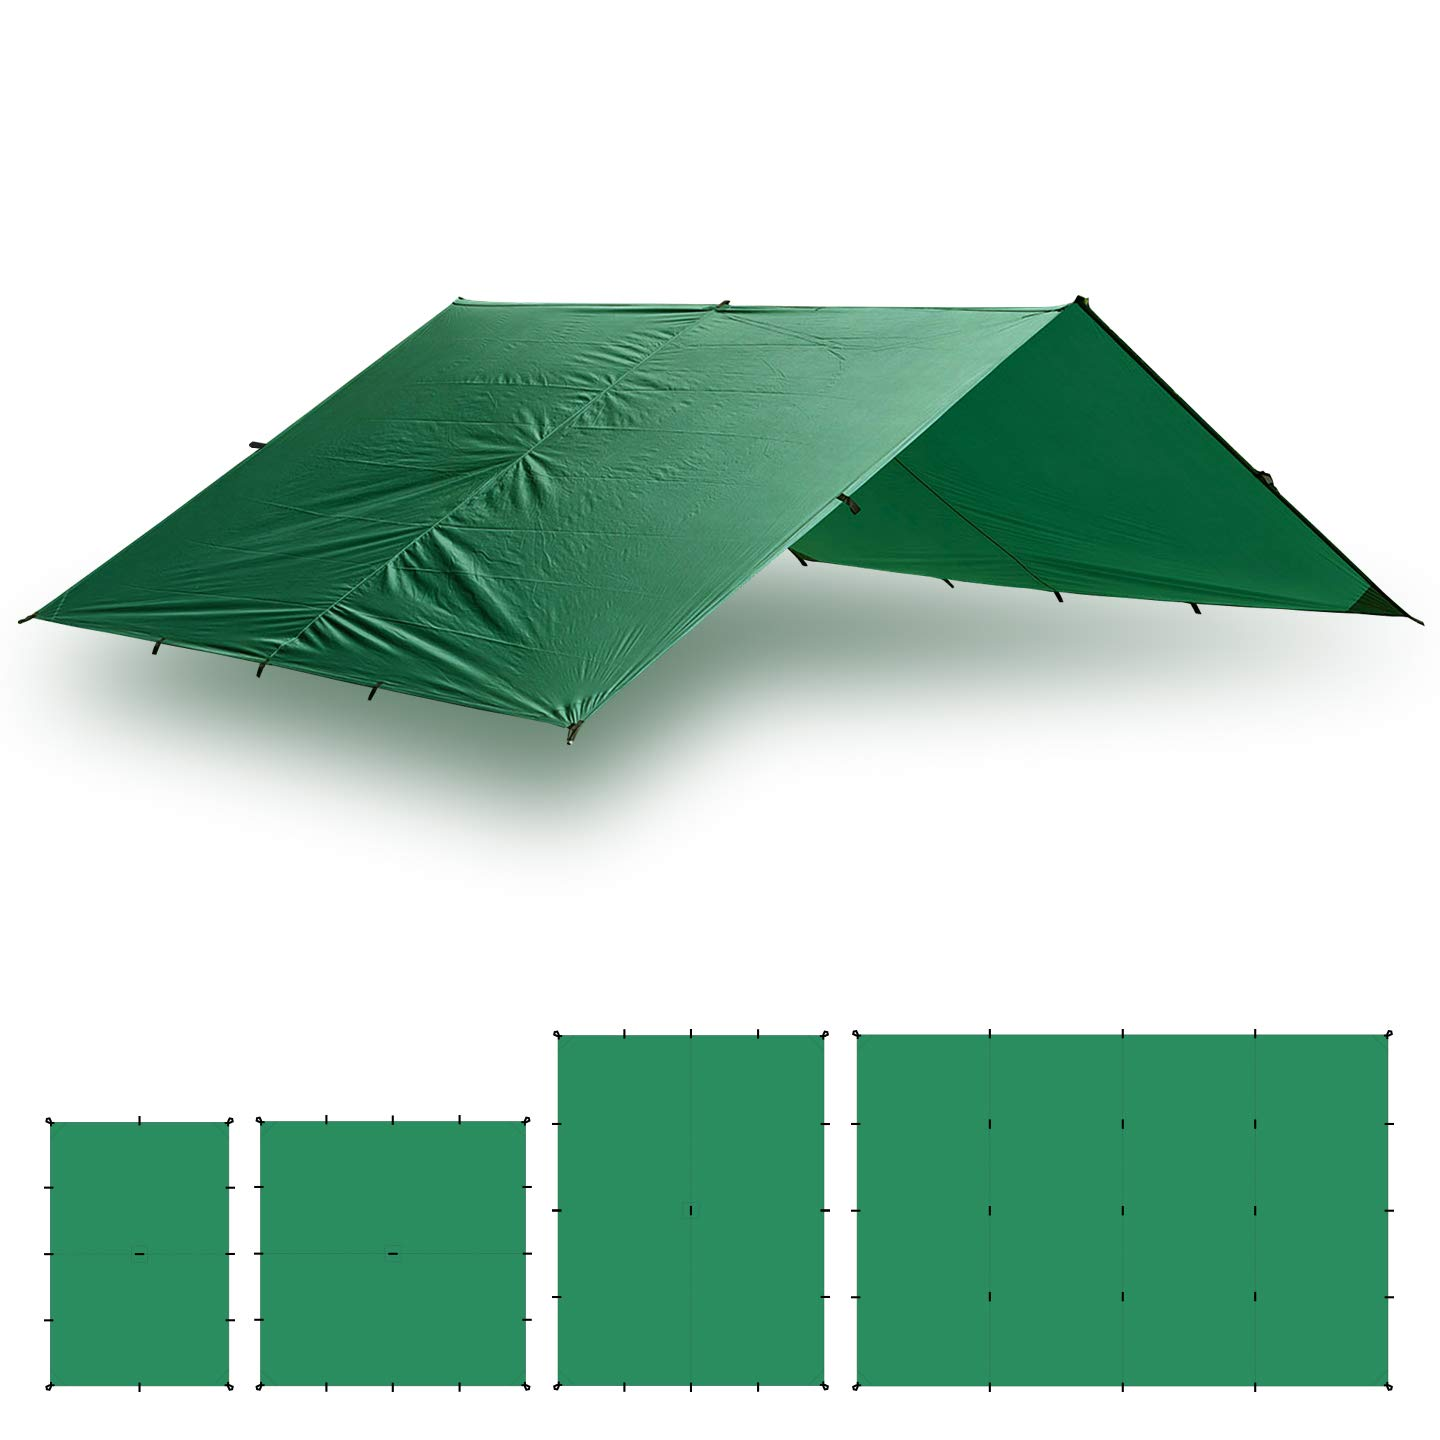 Aqua Quest Guide Tarp - 100% Waterproof Ultralight Ripstop SIL Nylon Backpacking Rain Fly - 10x10 Green by Aqua Quest